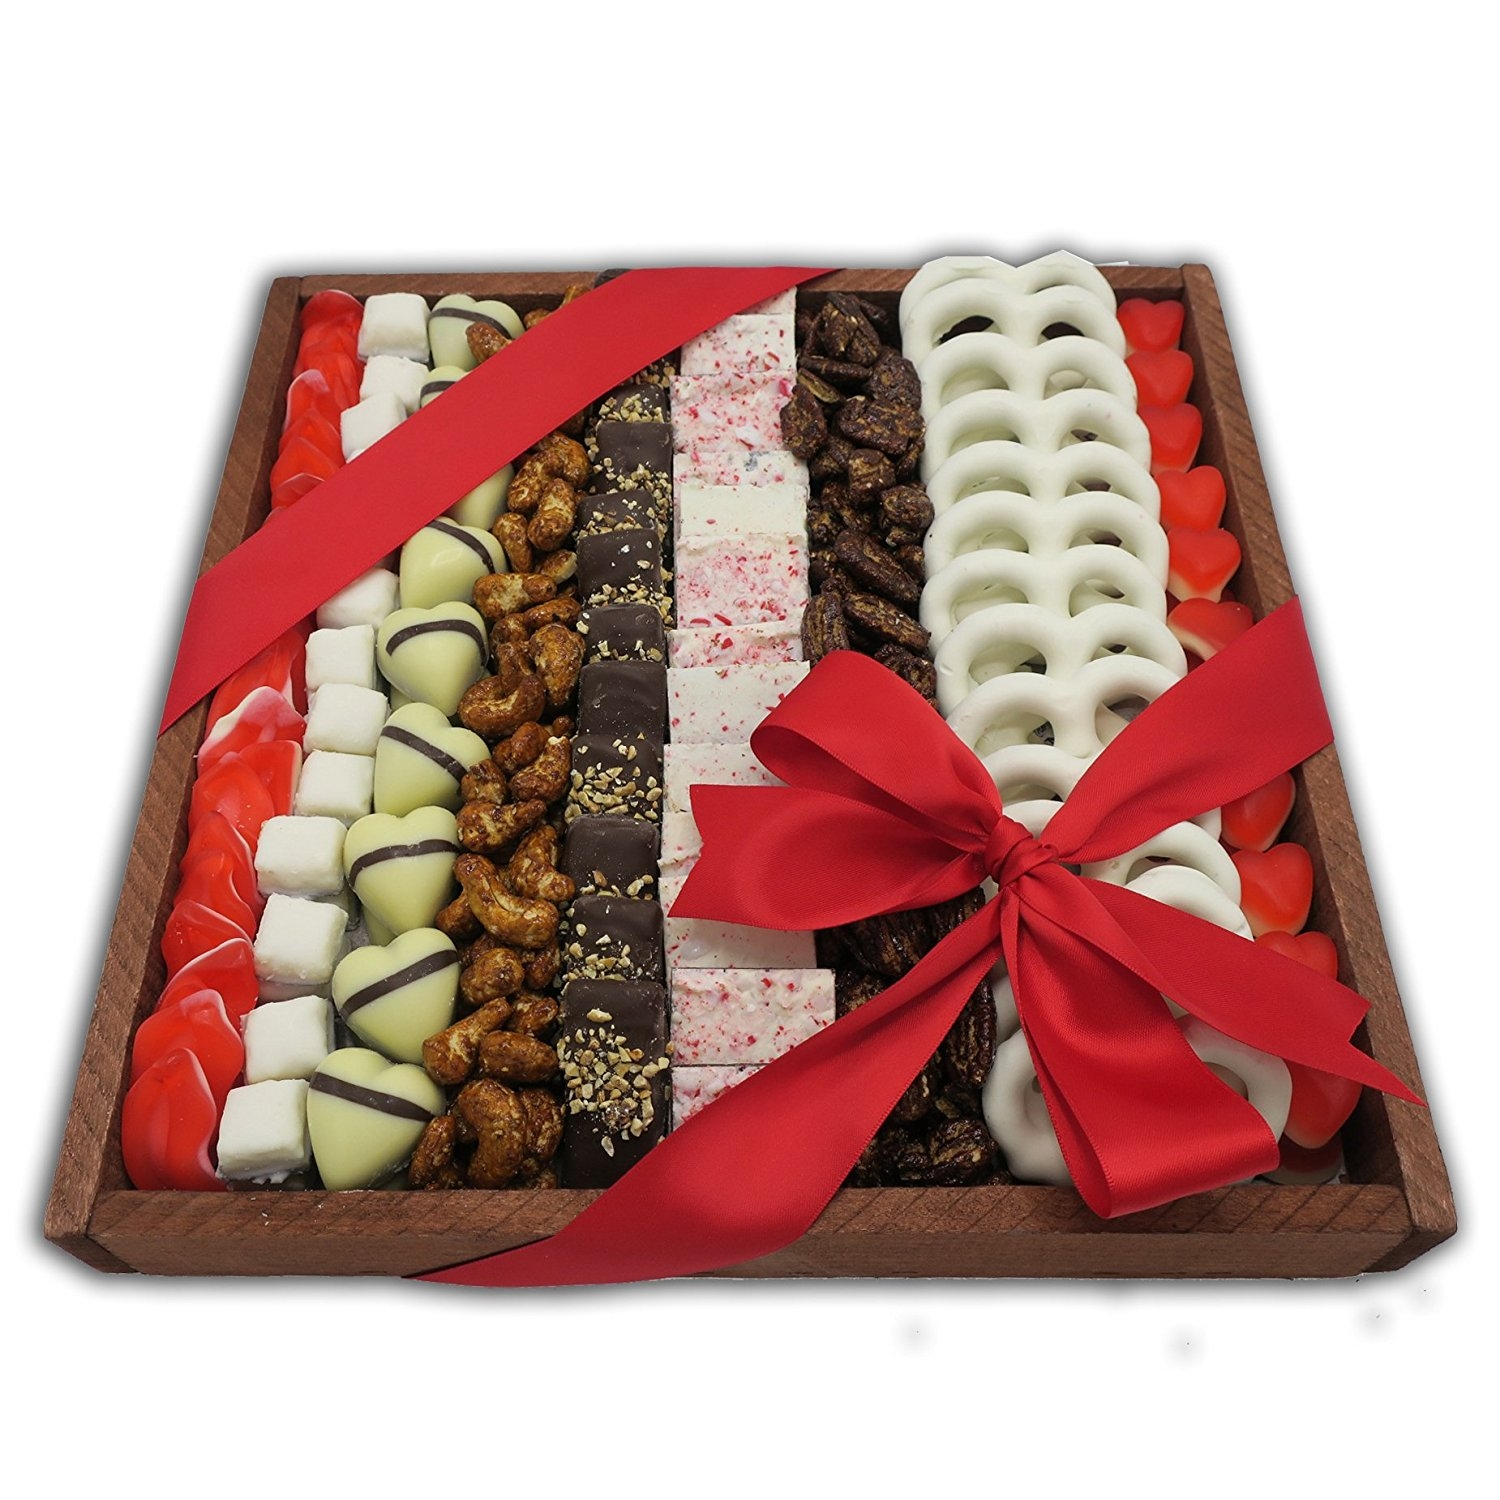 The Nuttery Valentines Day Rectangle Chocolate And Nuts Gift Arrangement